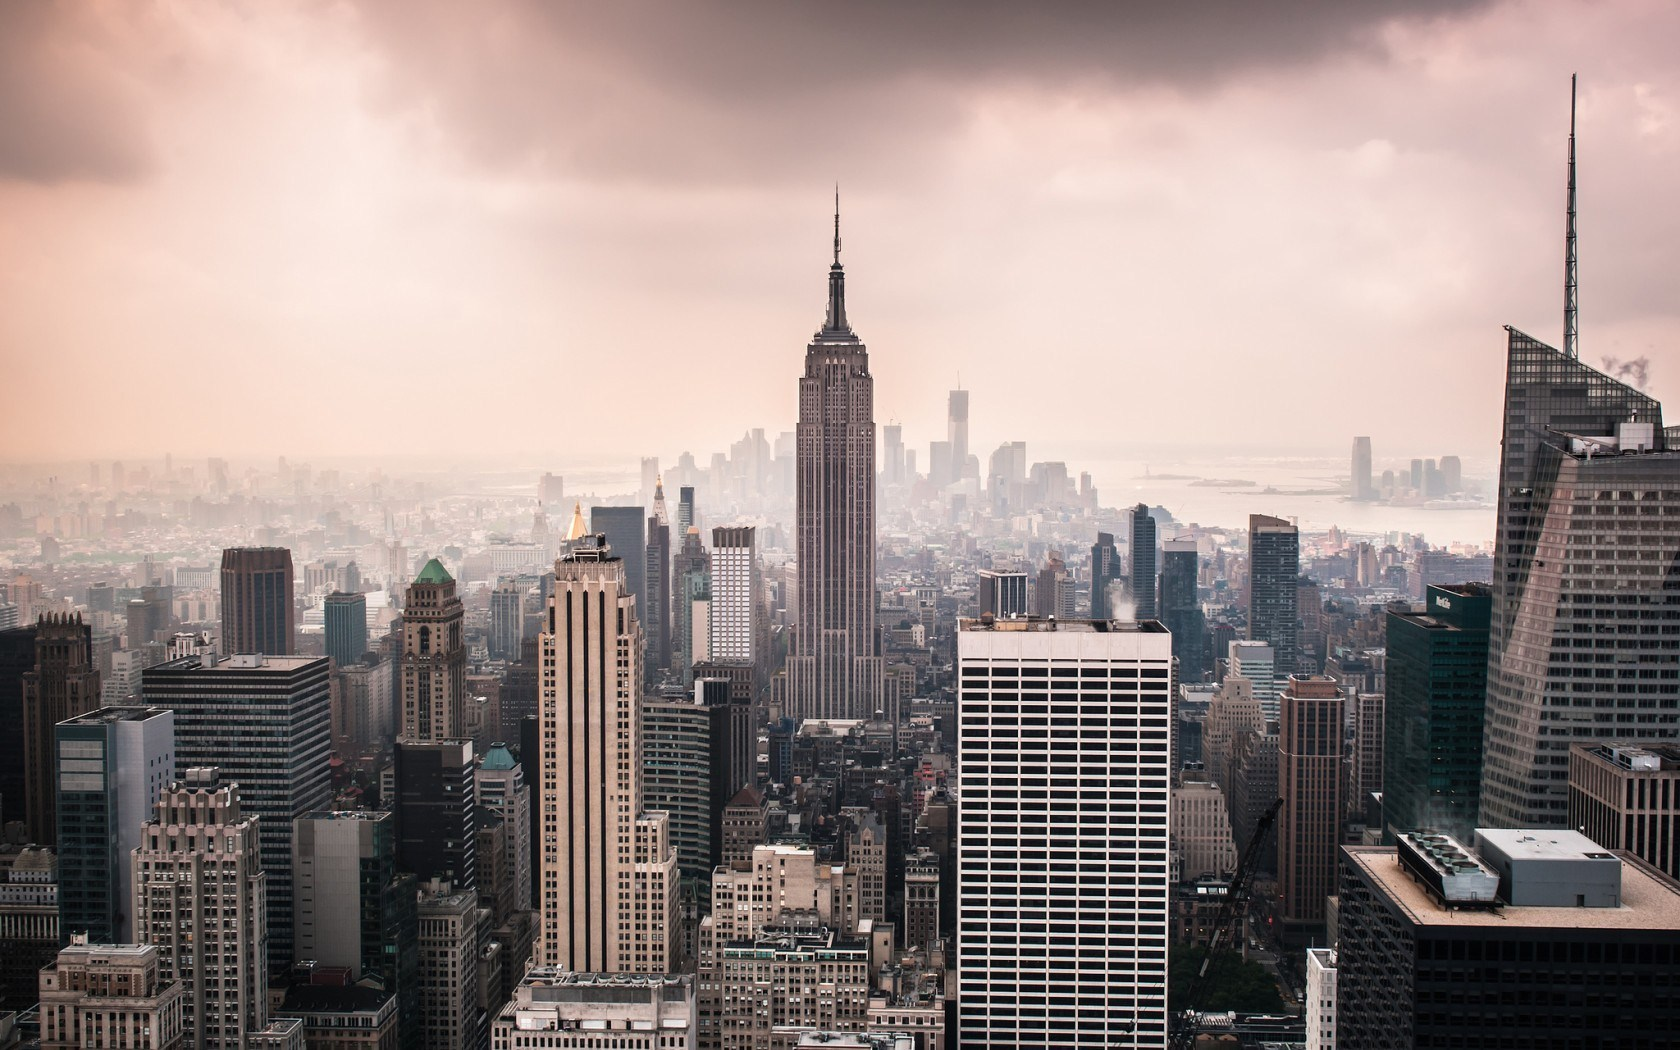 new york USA city towers photo skyline vintage hd wallpaper 1680x1050